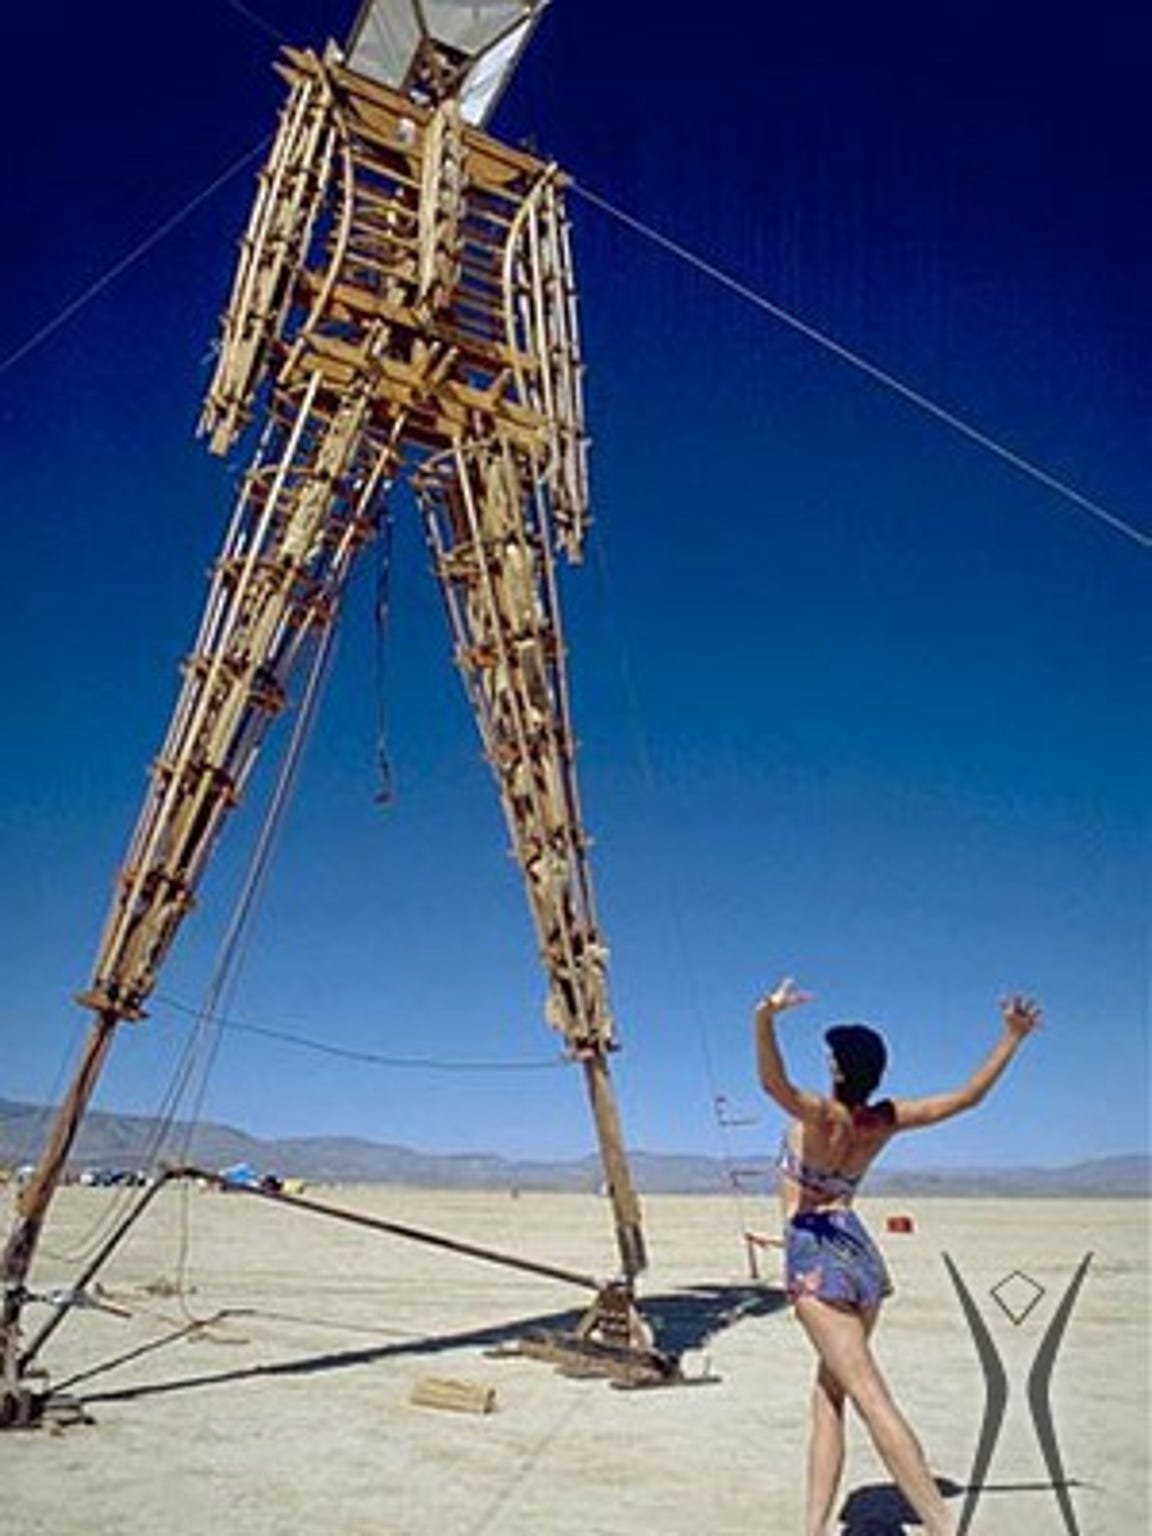 Crimson Rose, one of the Burning Man founders, practices